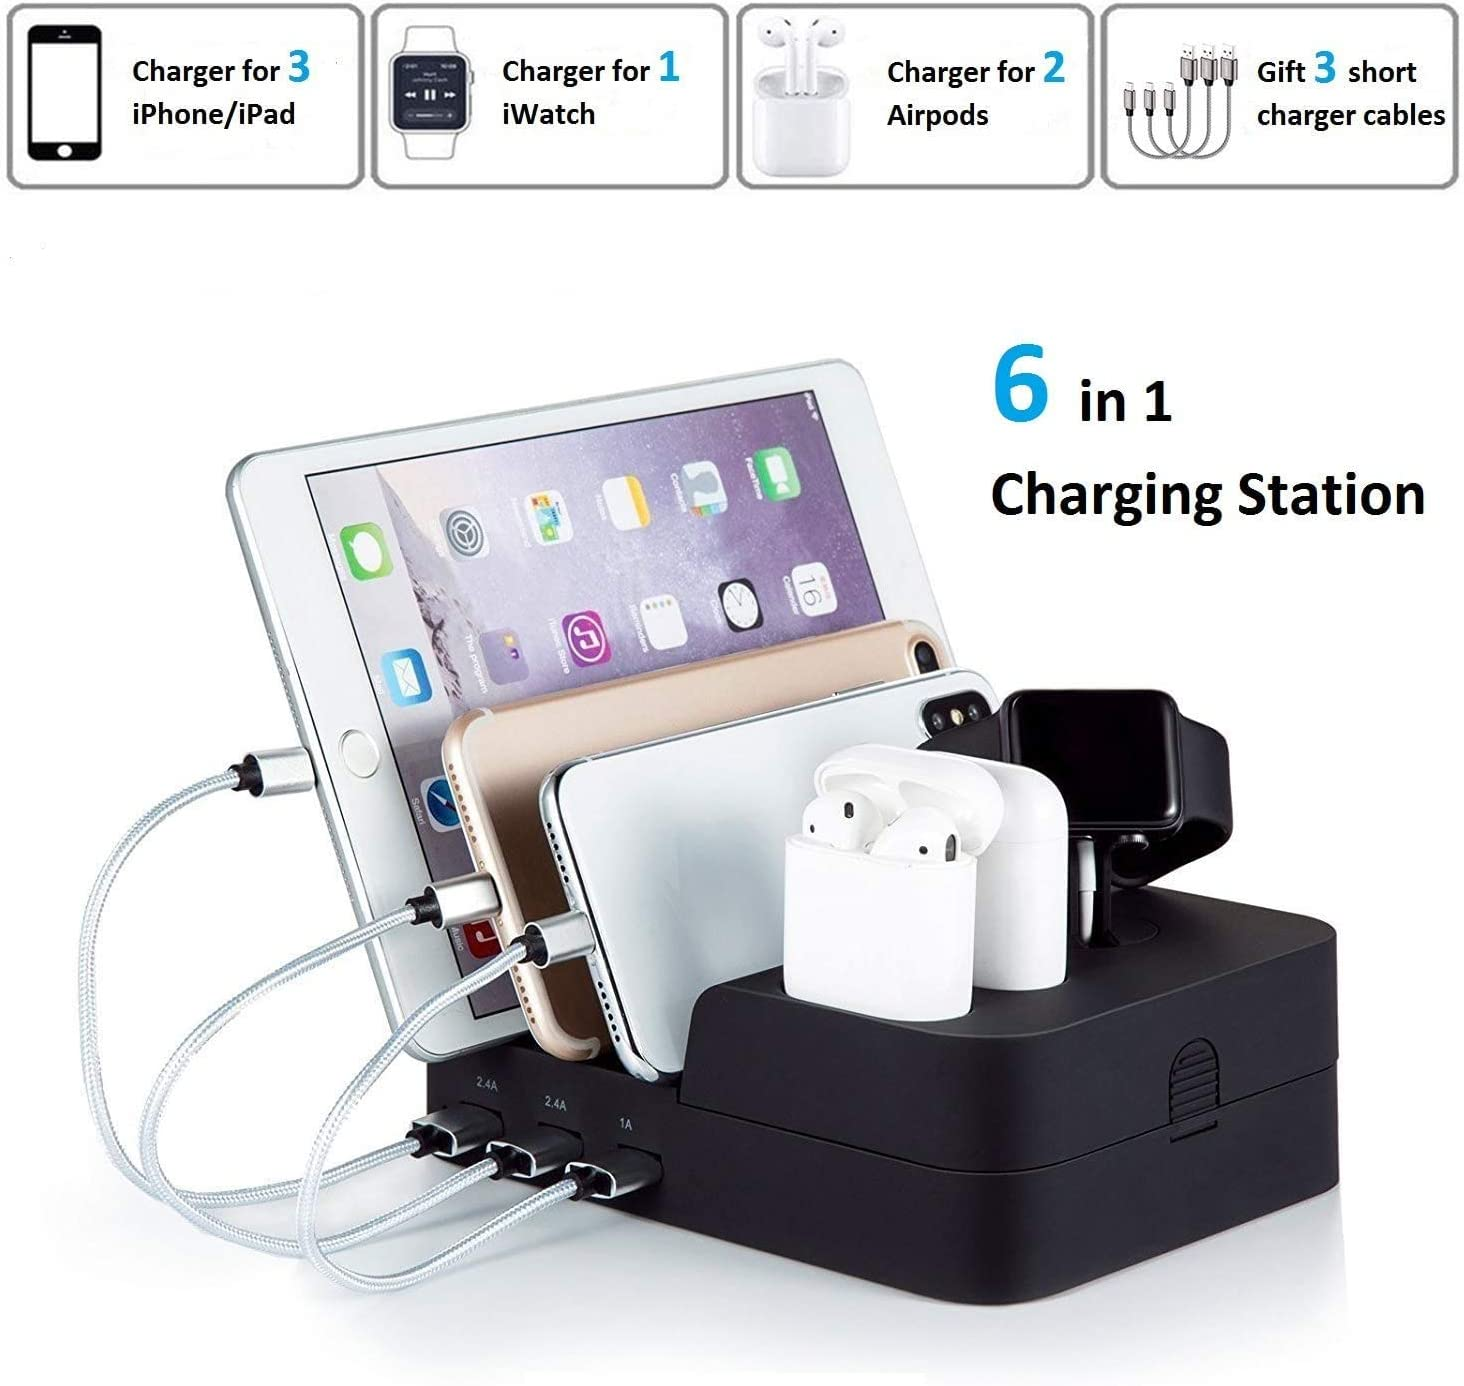 Iootmoy 6 Port USB Charging Station Multi Device USB Charging Dock Station HUB Desktop Charger Stand Organizer Compatible for iPhone ipad Airpods iwatch Kindle Tablet Multiple Devices